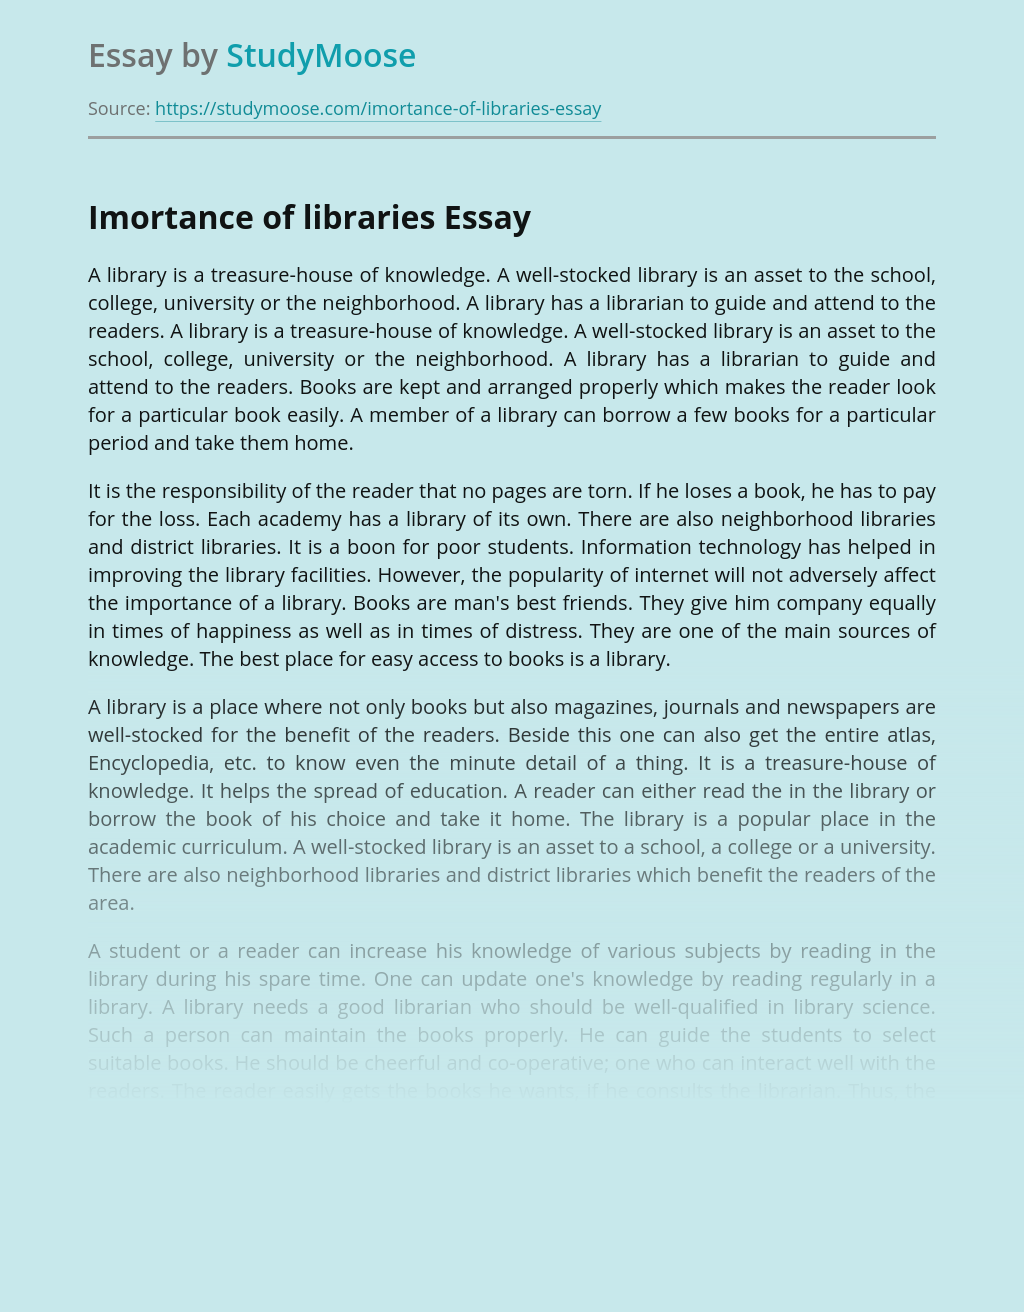 Imortance of libraries